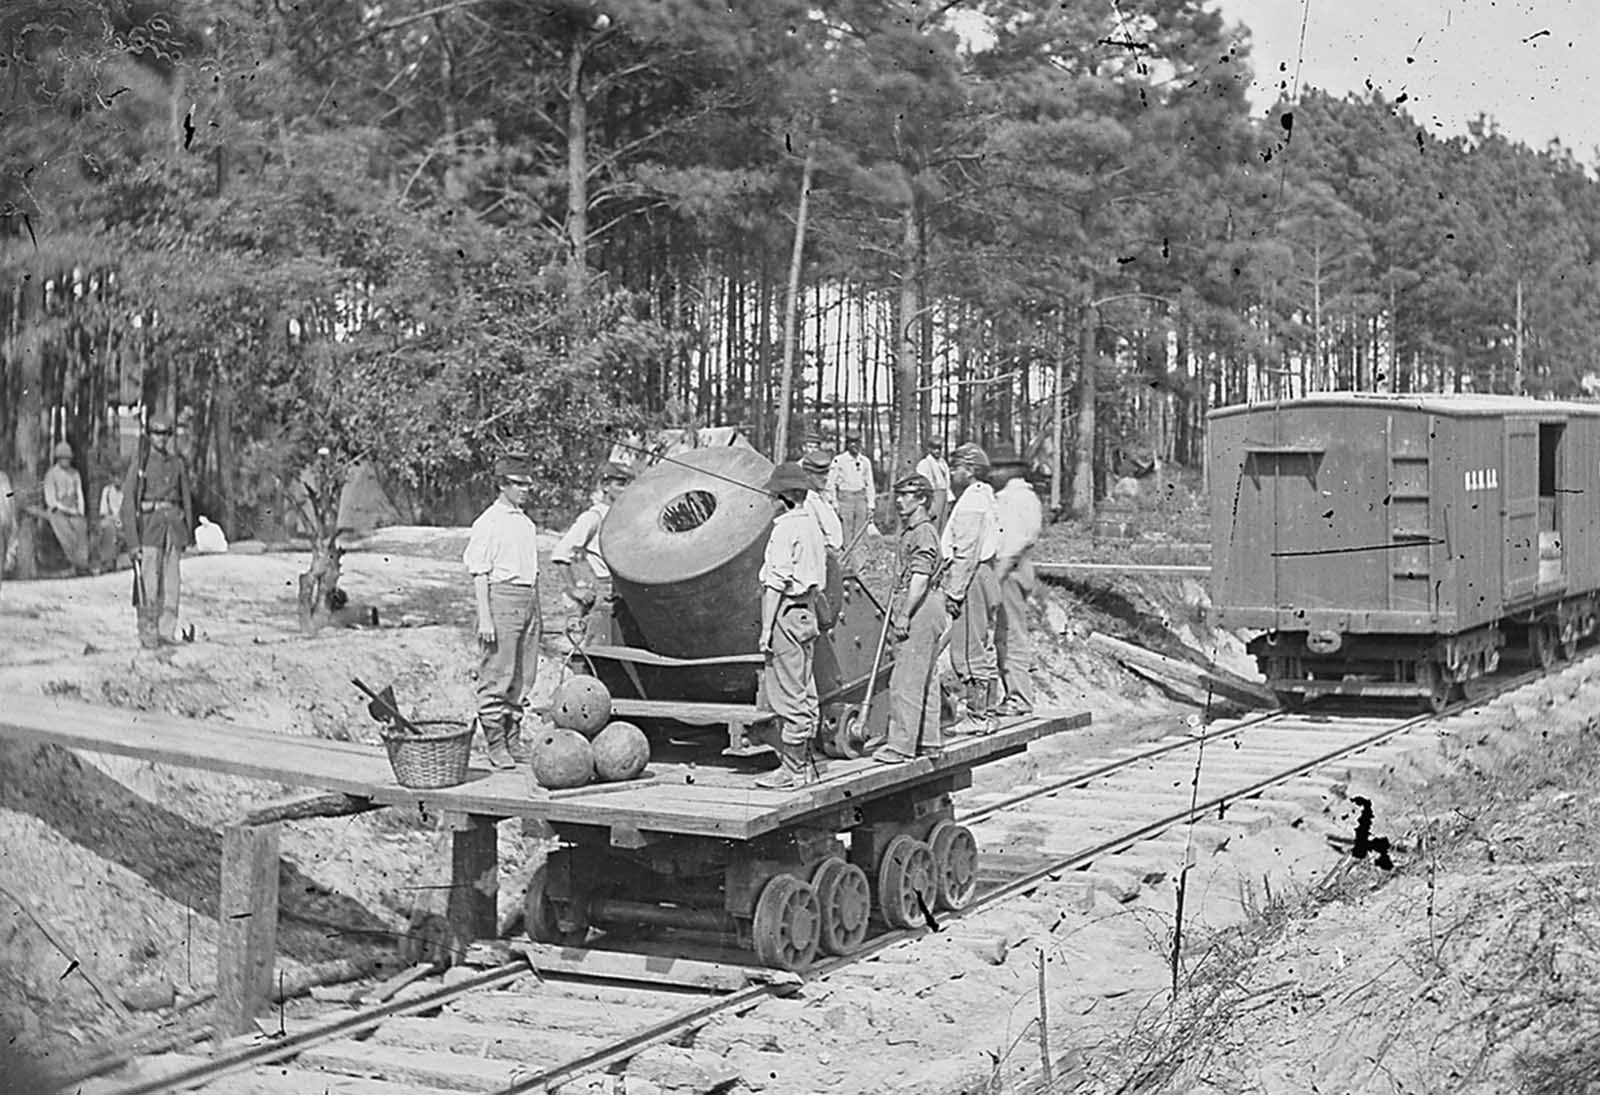 A mortar mounted on a railrioad car, near Petersburg, Virginia.